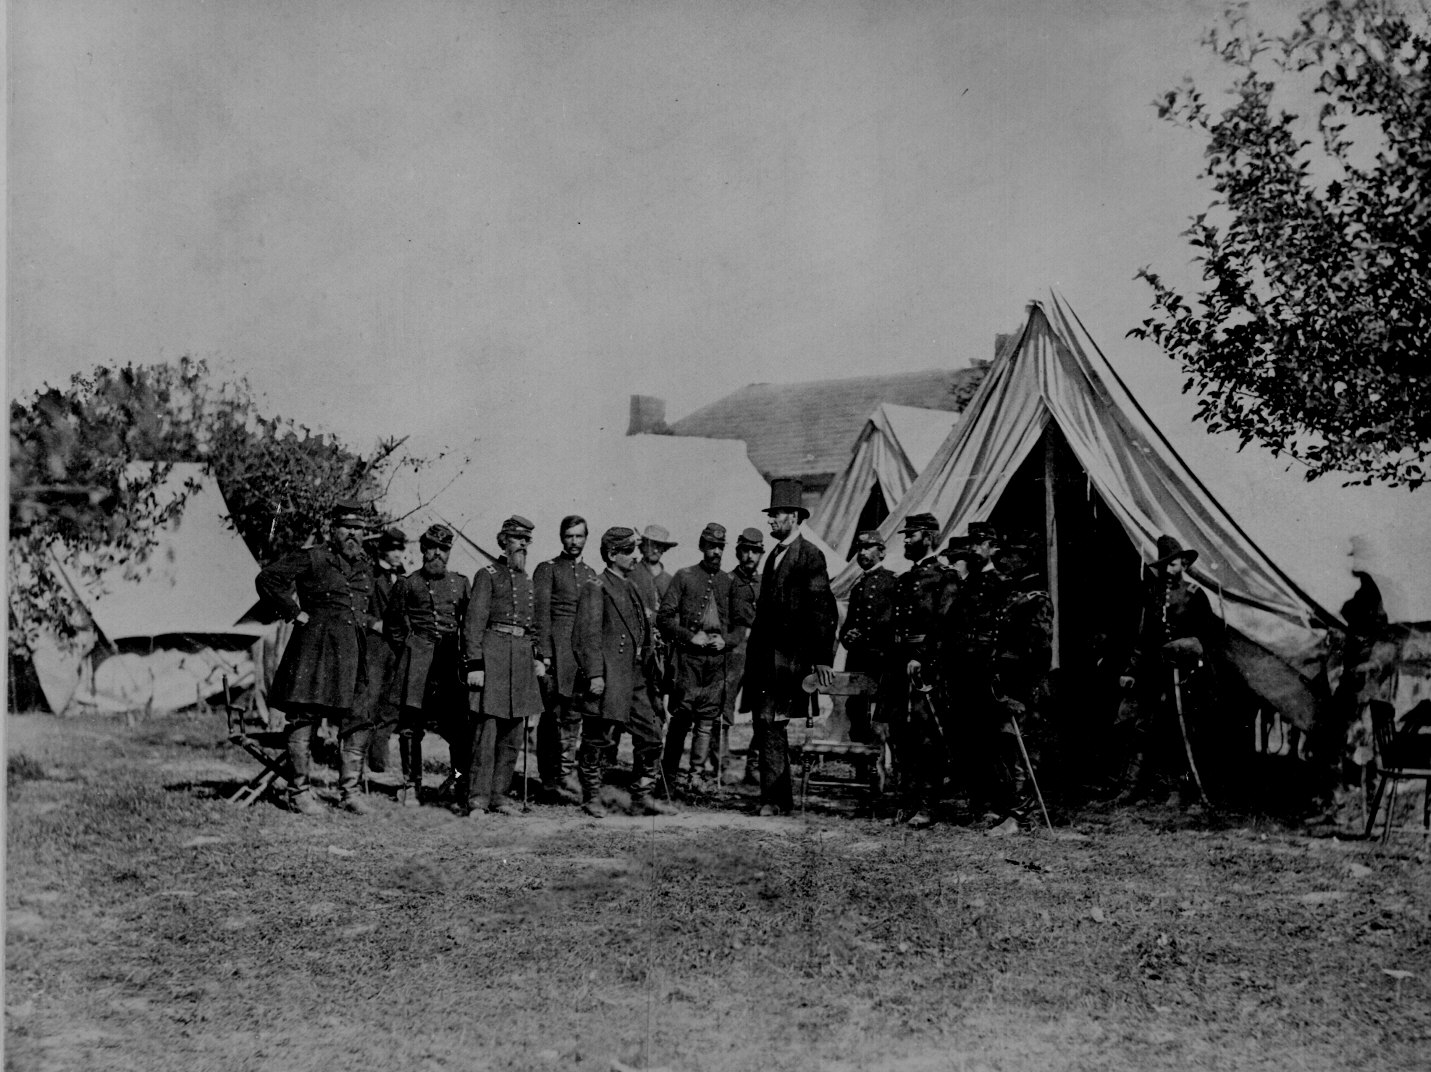 President Lincoln visiting the battlefield at Antietam Maryland October 3, 1862. General McClellan and 15 members of his staff are in the group. Photographed by Alexander Gardner. 165-SB-23.